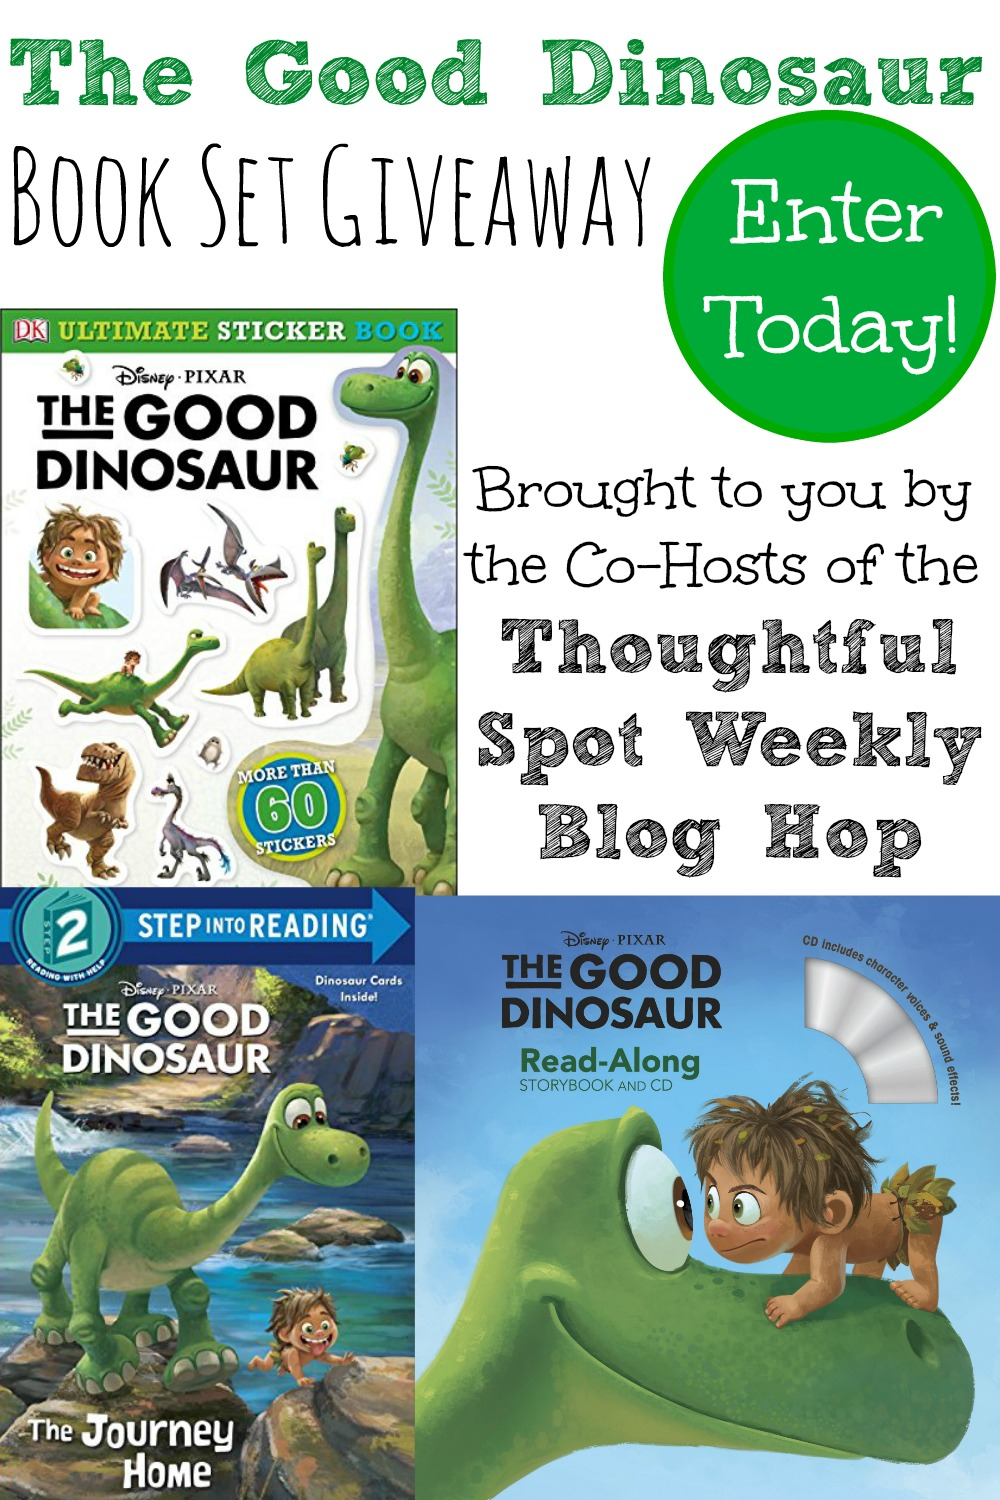 The Thoughtful Spot Weekly Blog Hop Good Dinosaur Book Giveaway